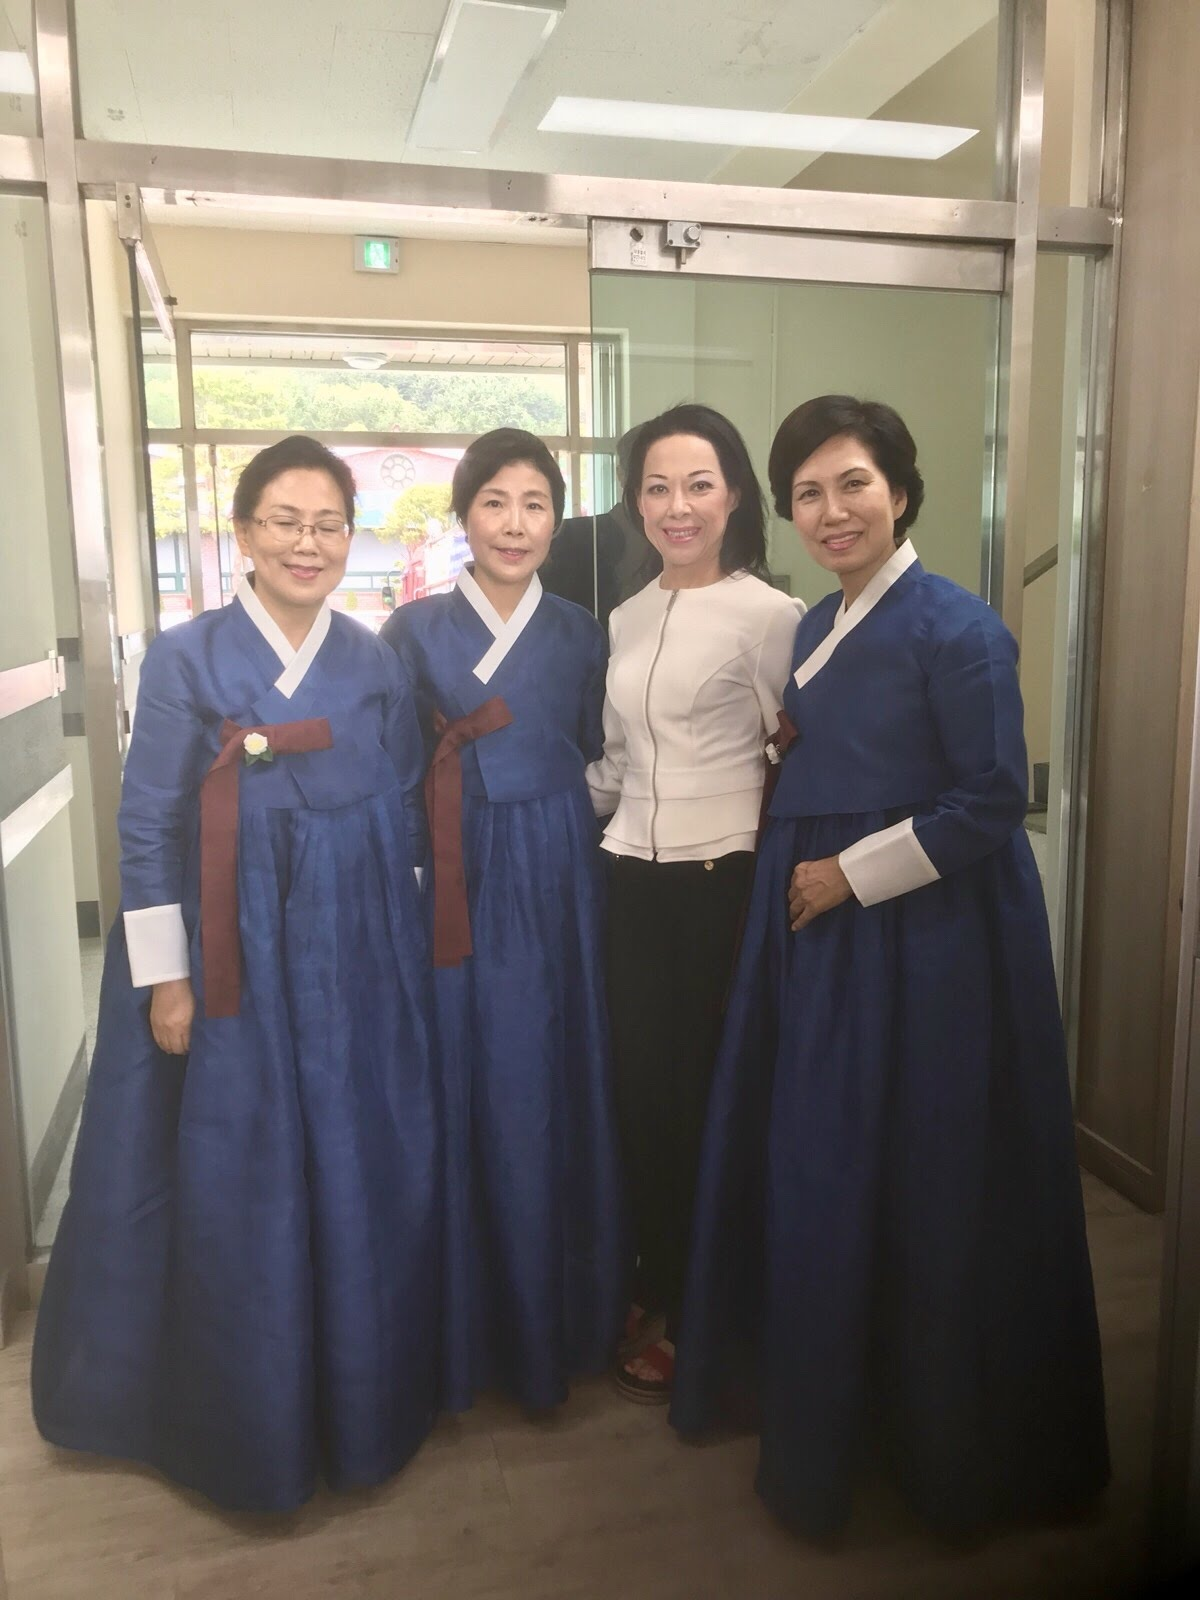 These ladies performed a tea ceremony at the VIP lounge every day. They always welcomed us with a smile and it was the best part of the day!